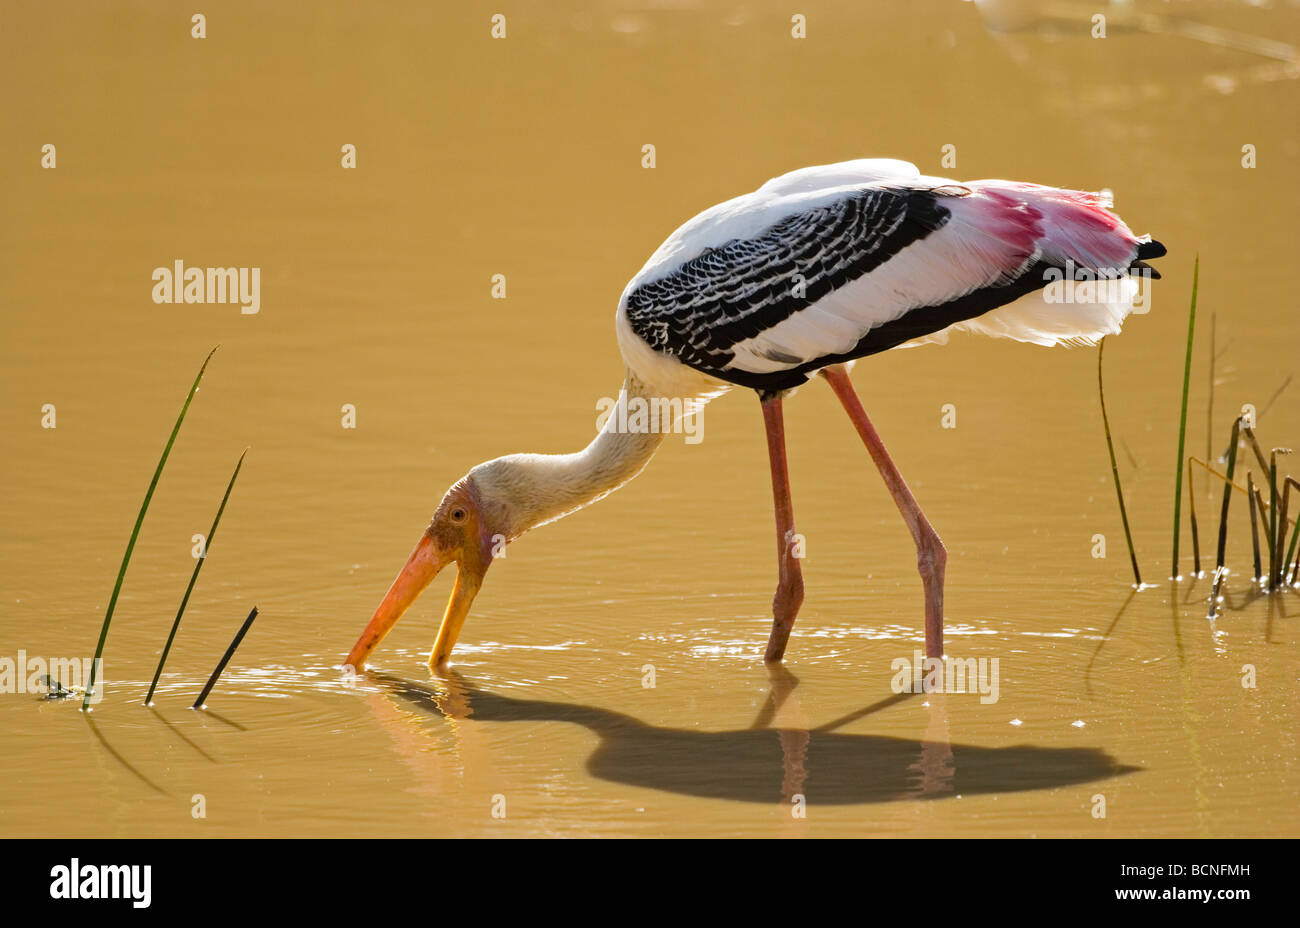 Painted Stork (Mycteria leucocephala) feeding, Yala National Park, Sri Lanka - Stock Image